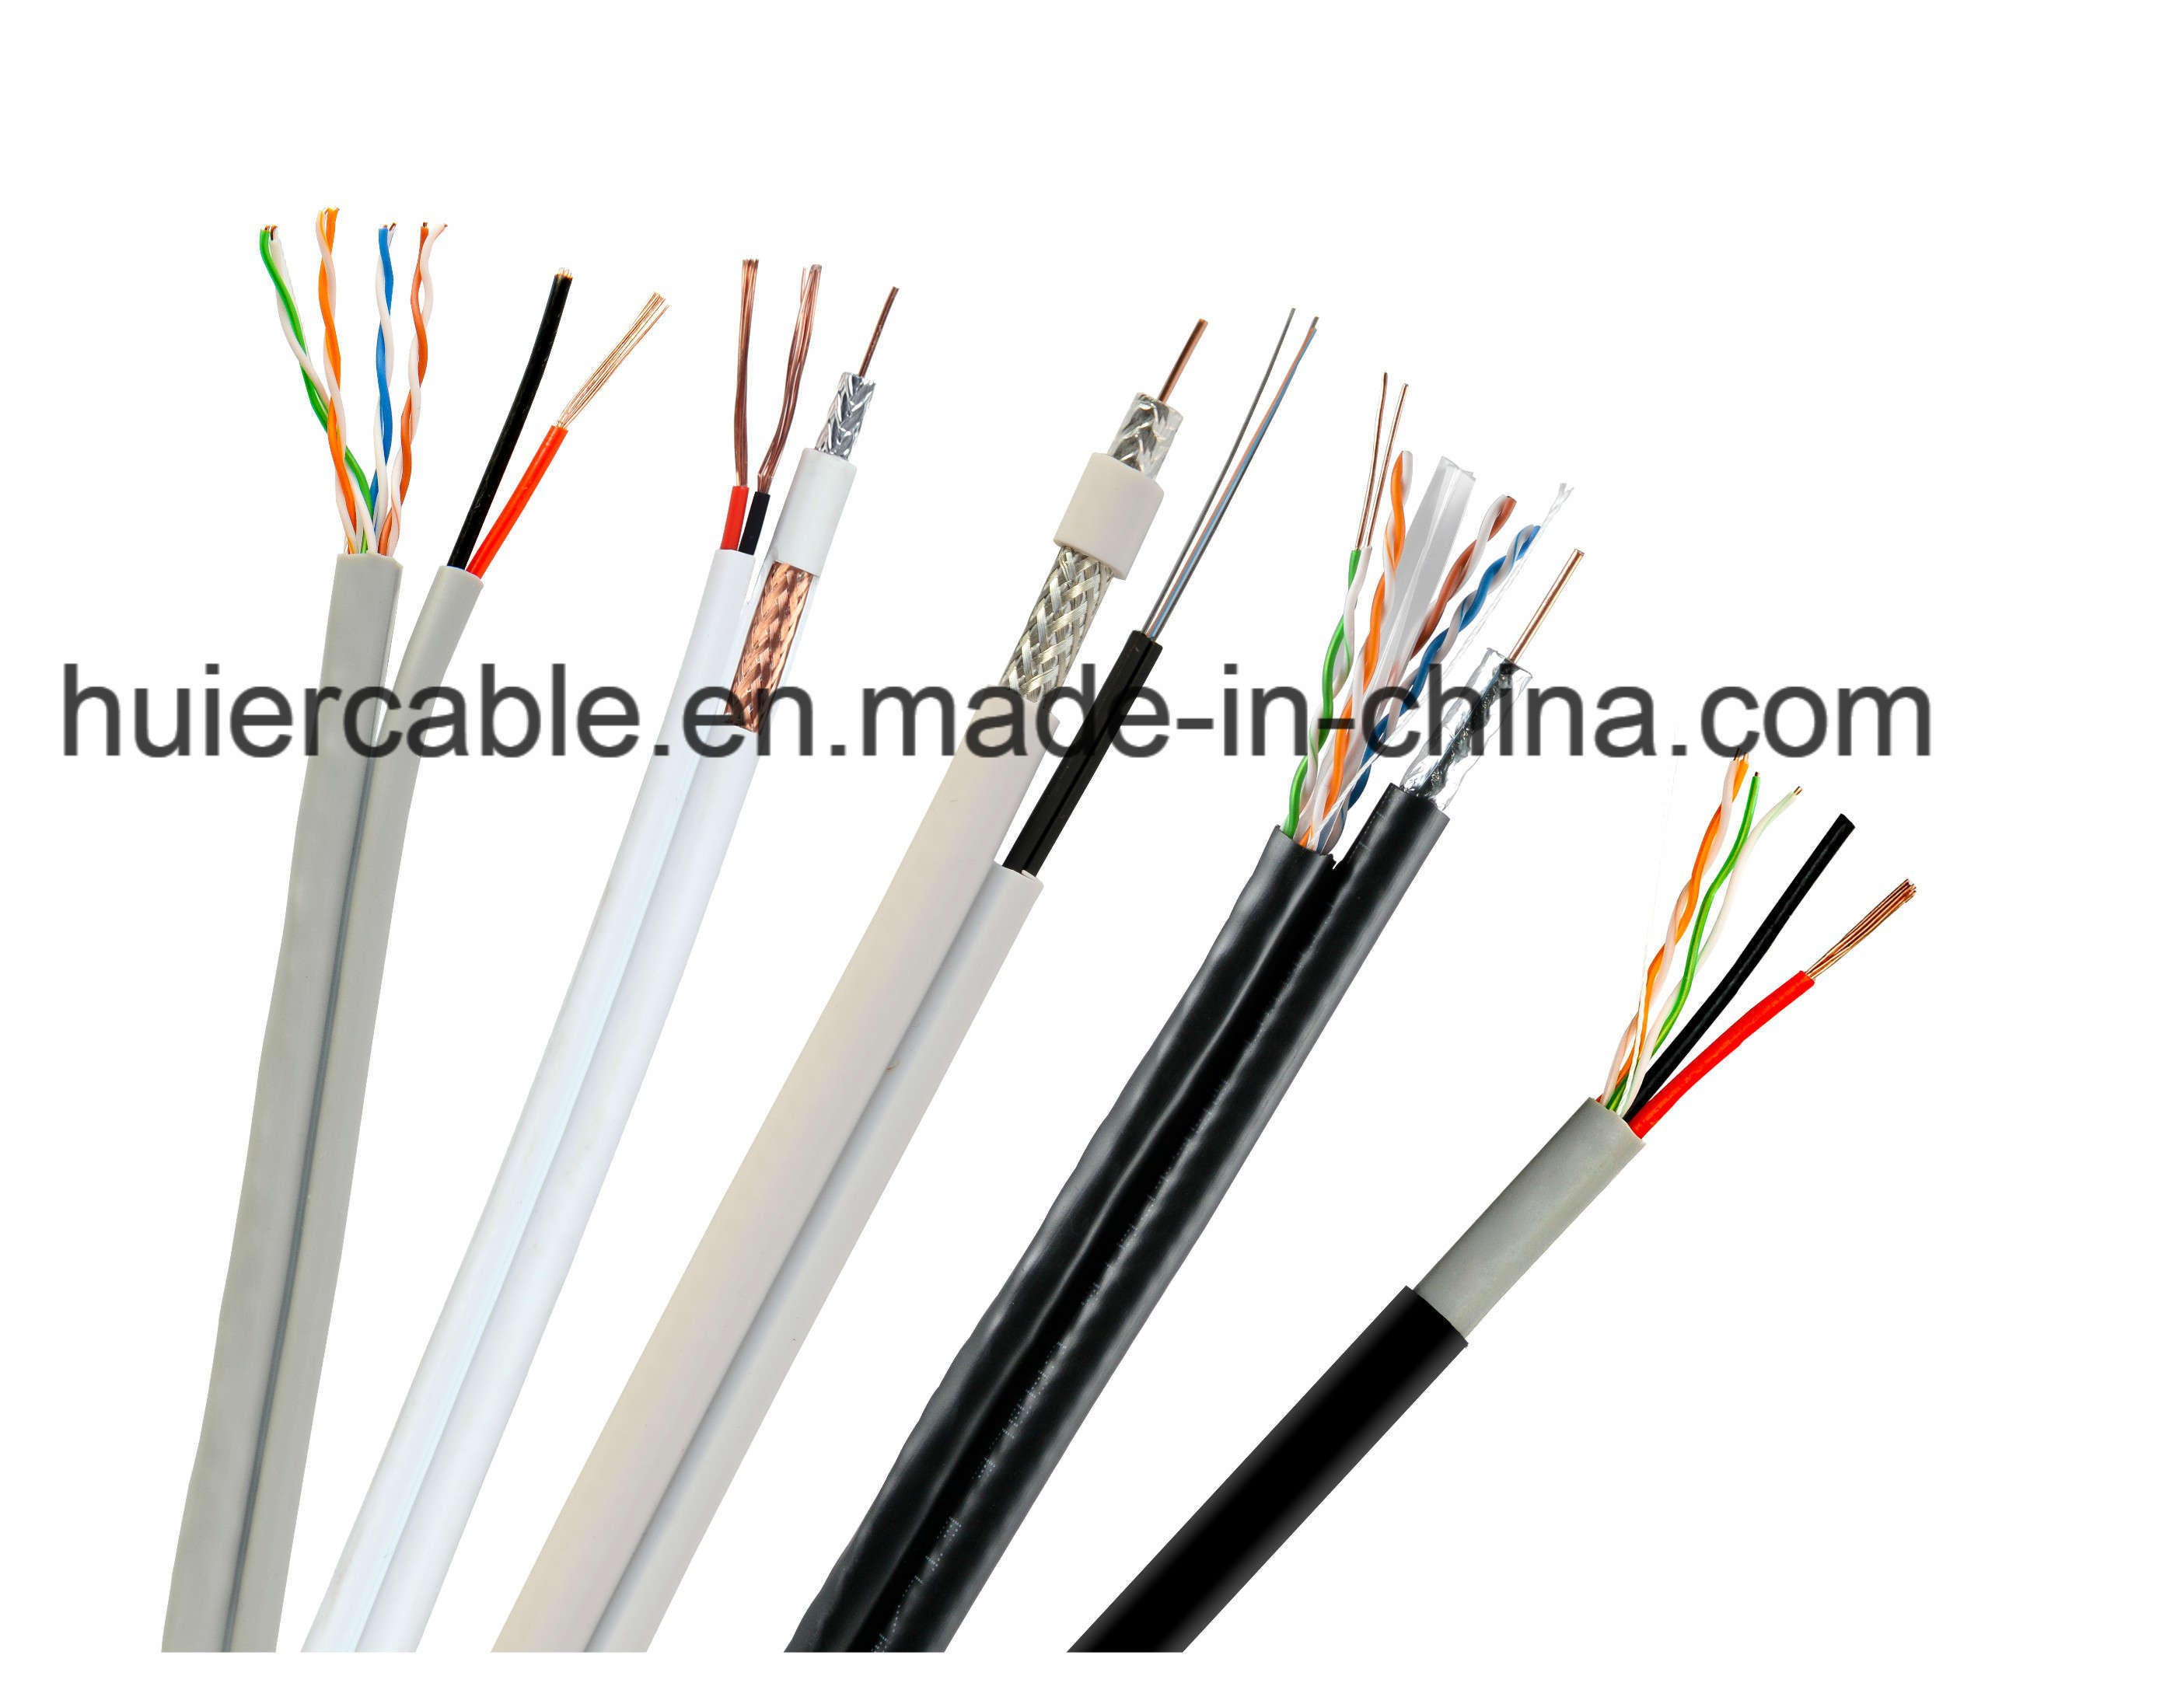 Composition RG6 CCTV Rg59 Cable for Security (Siamese with power wires)